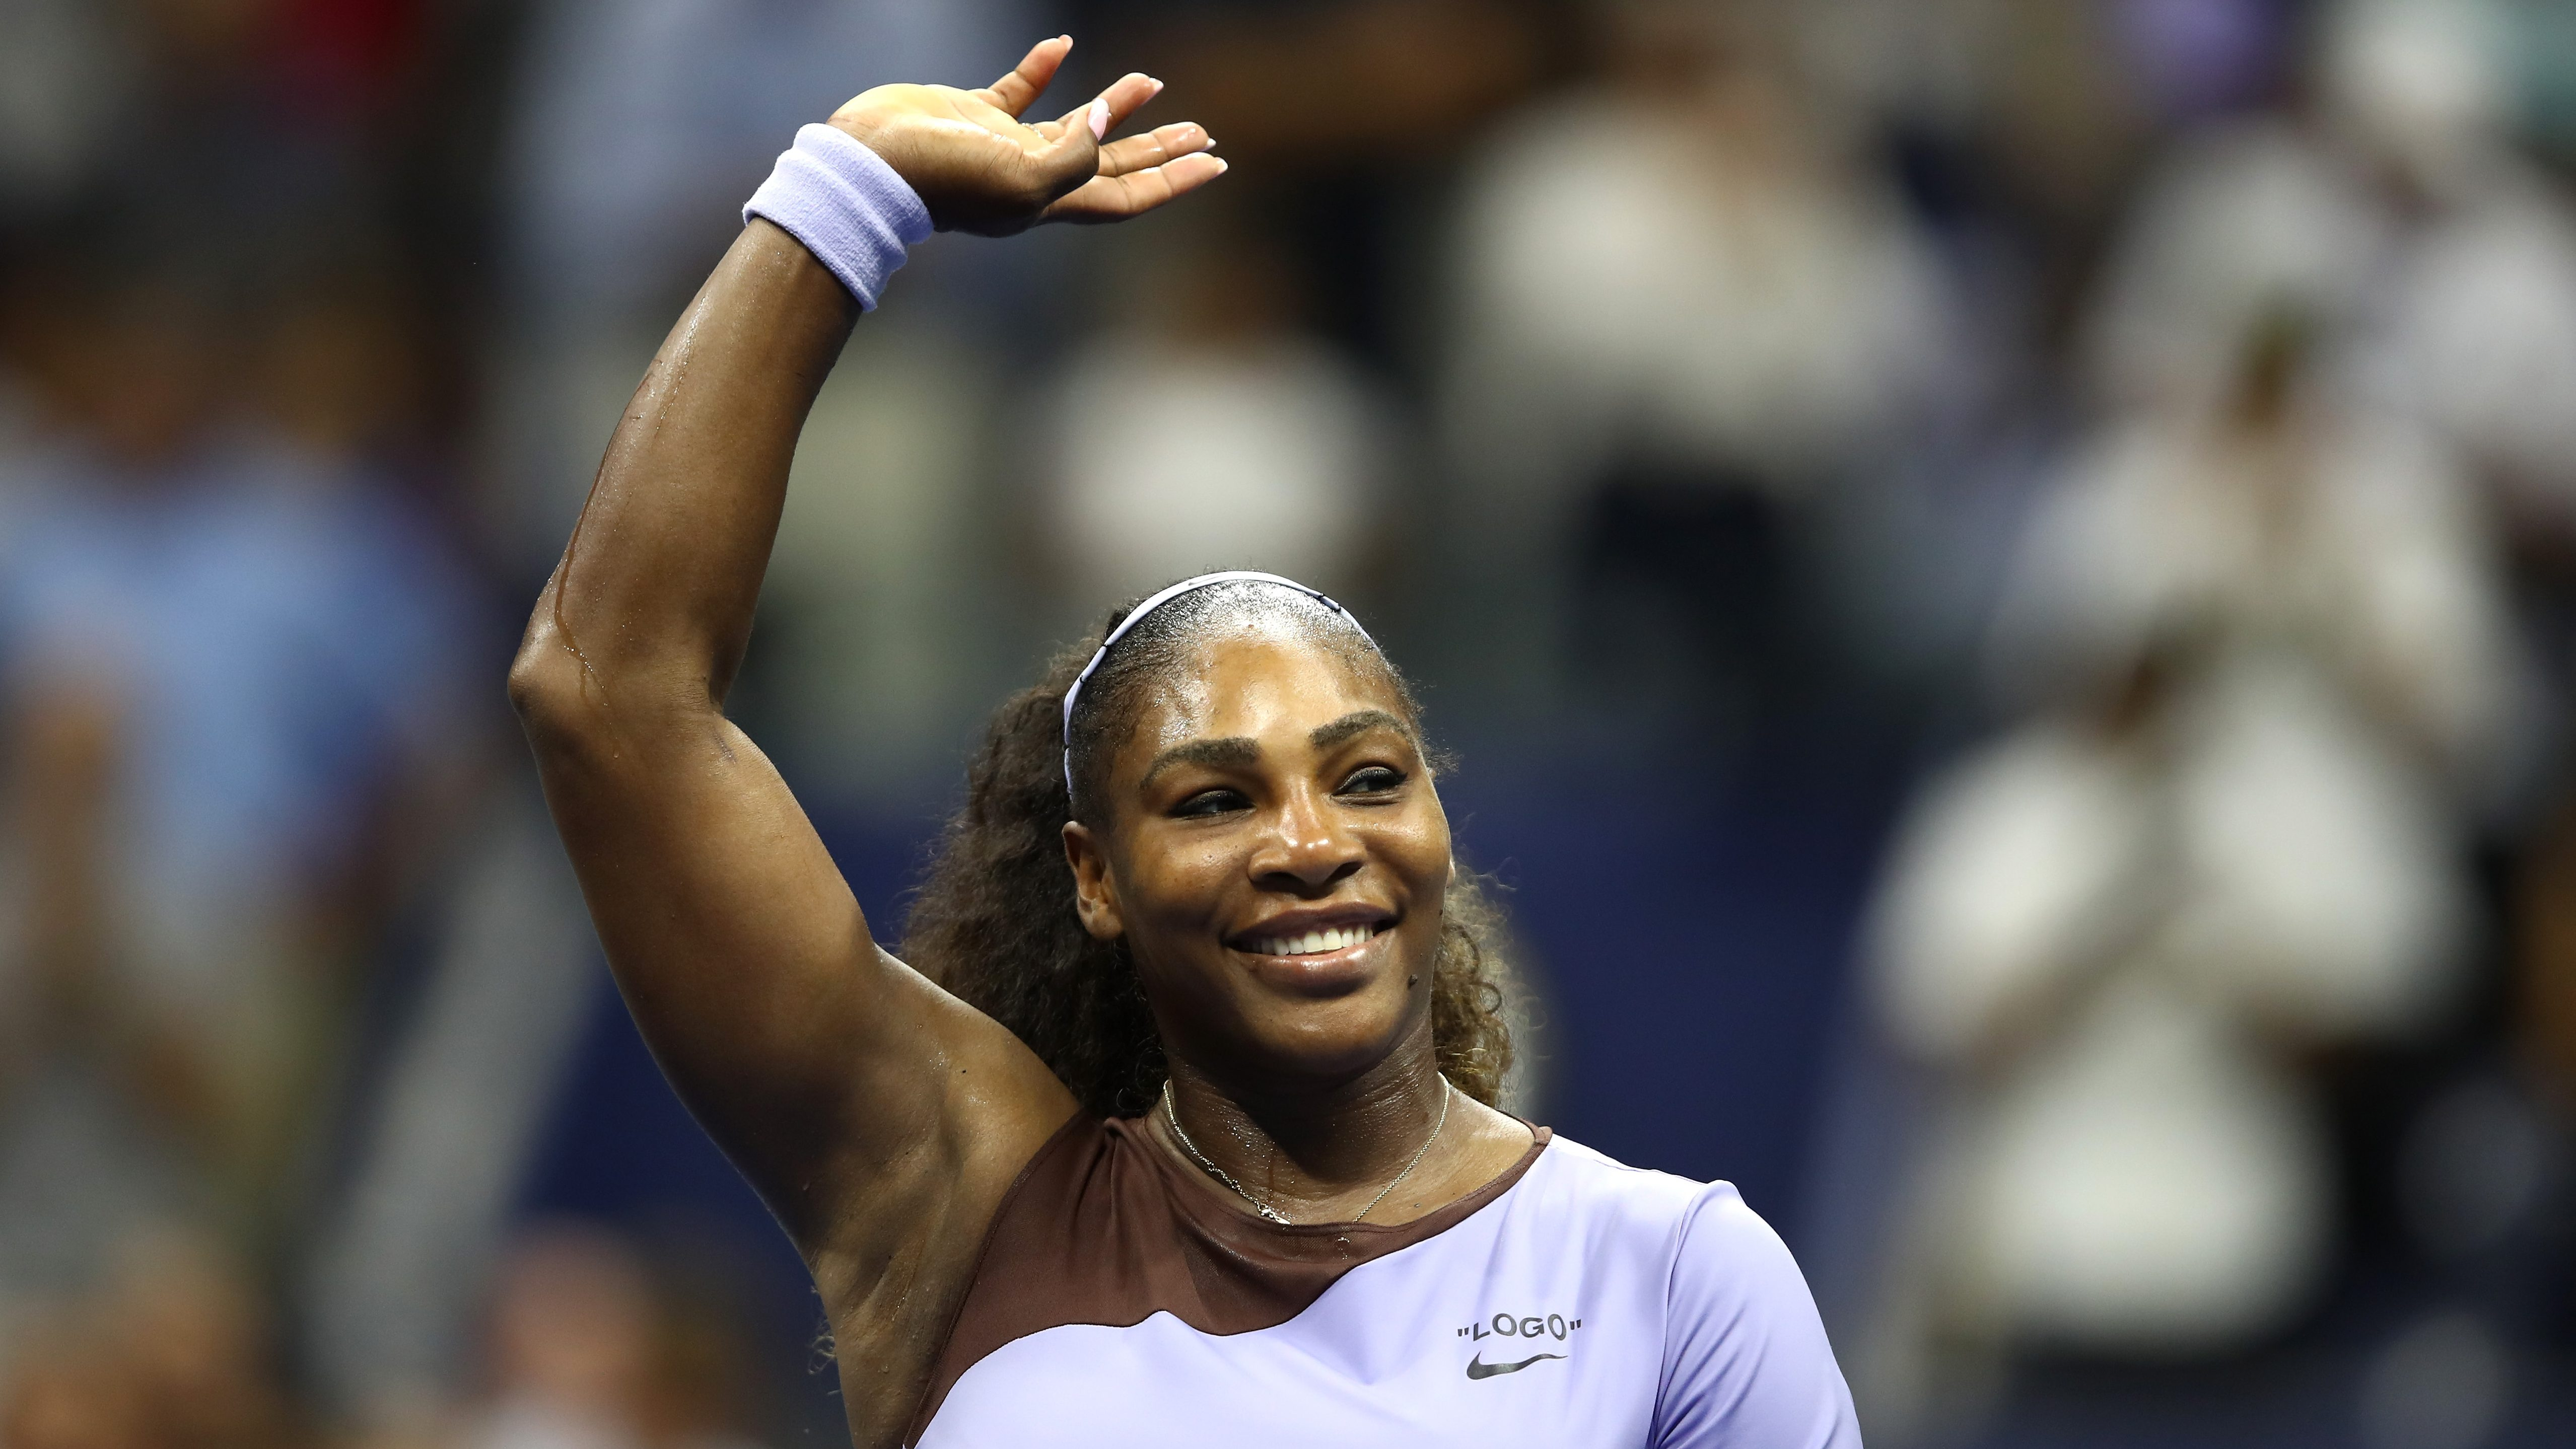 2018 US Open – Day 11